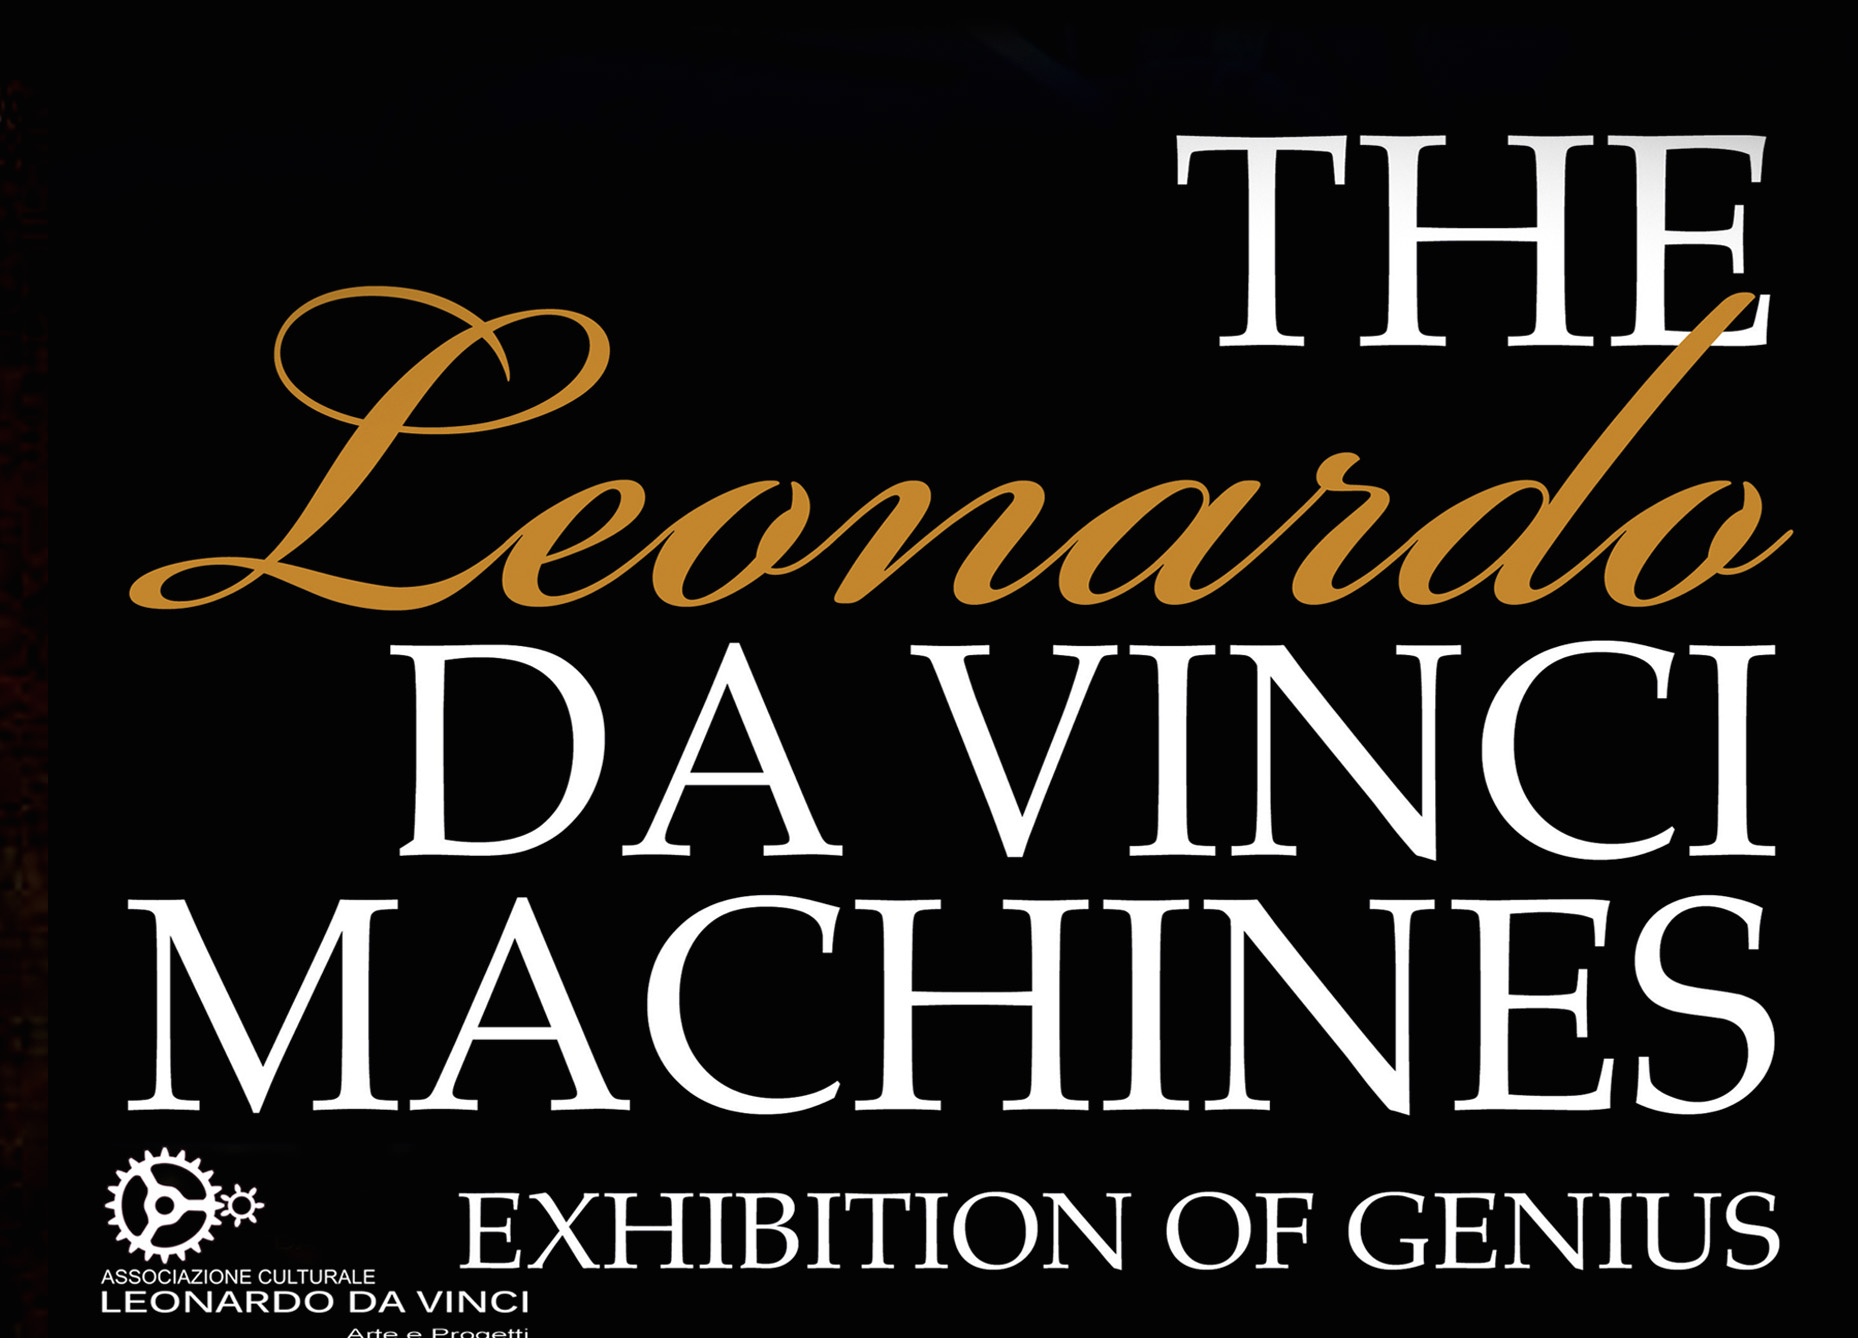 International Exhibition of Leonardo da Vinci